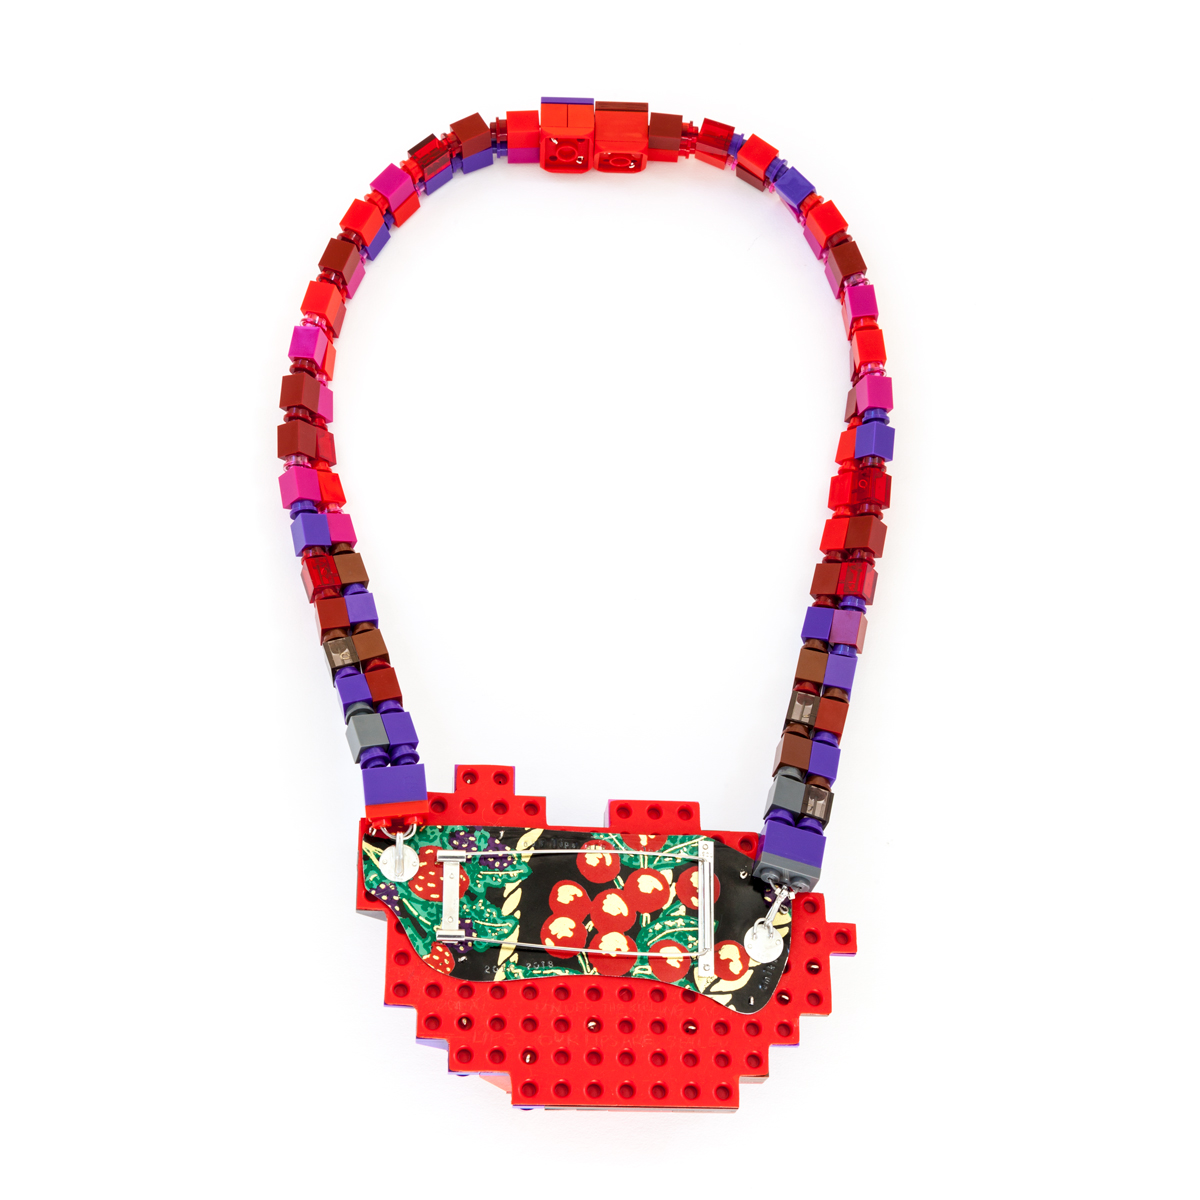 Lip 3: Our Lips Are Sealed (neckpiece back)